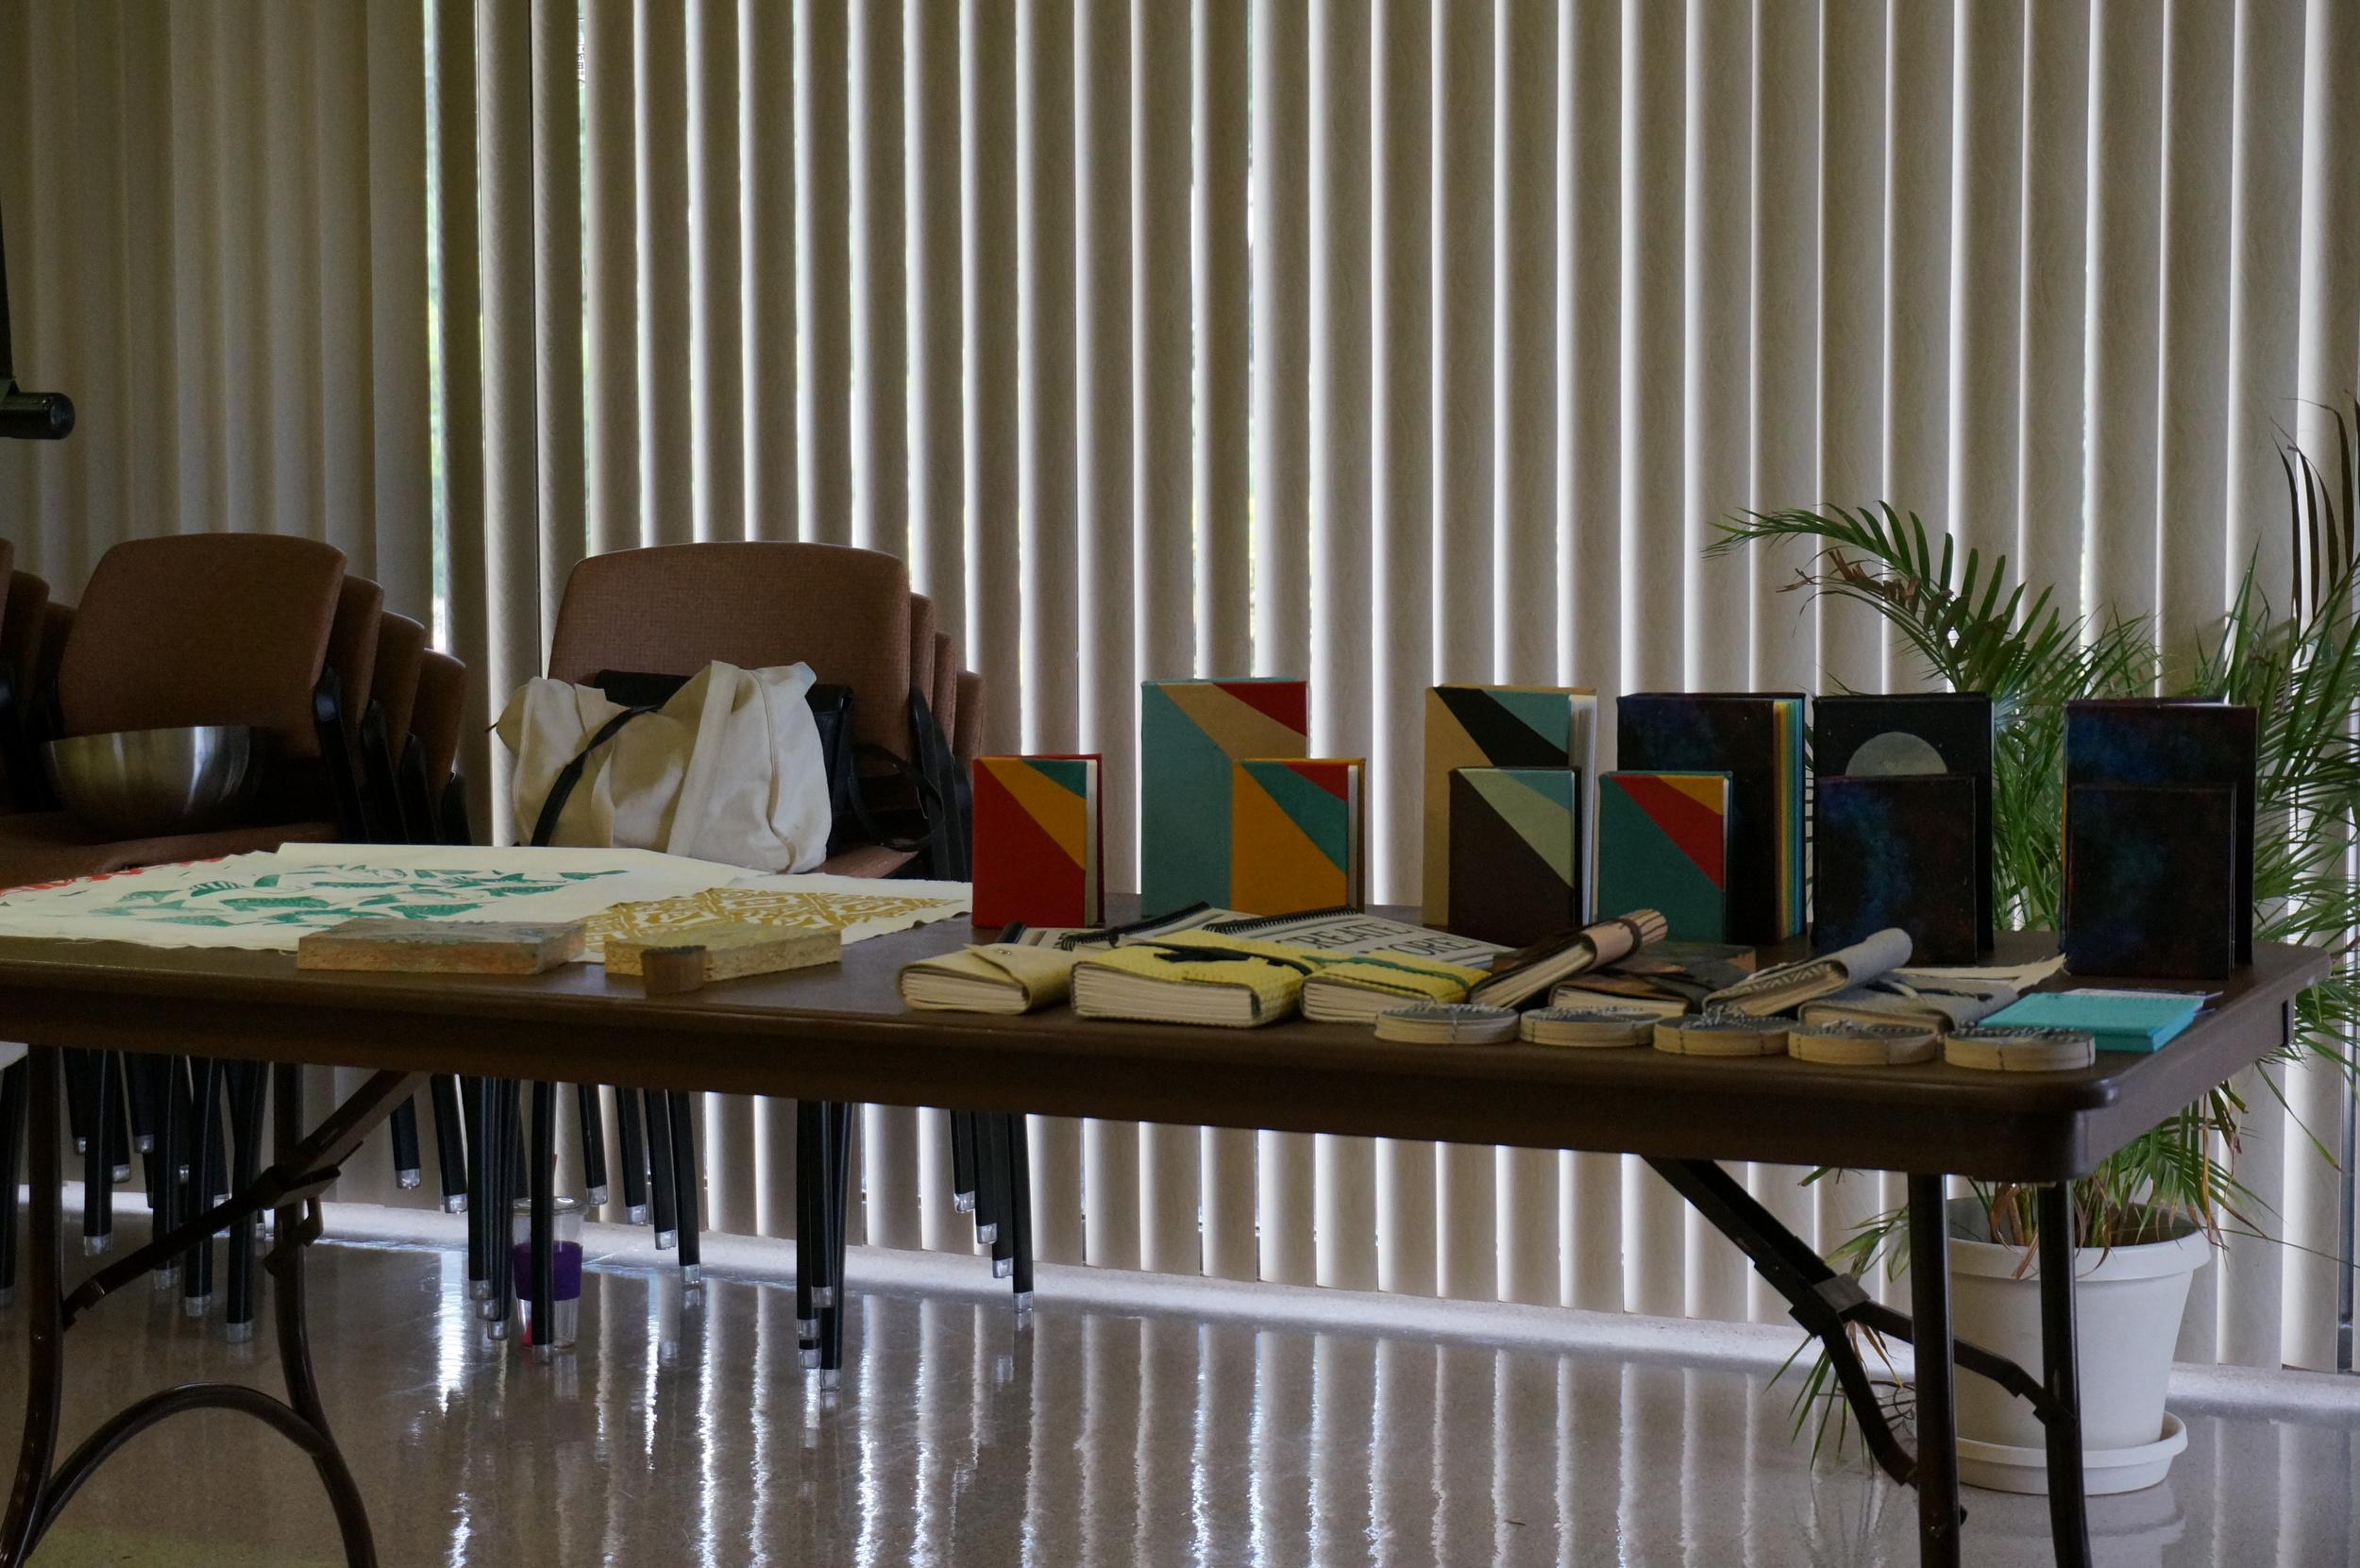 IS Projects fabric samples, handmade books and journals